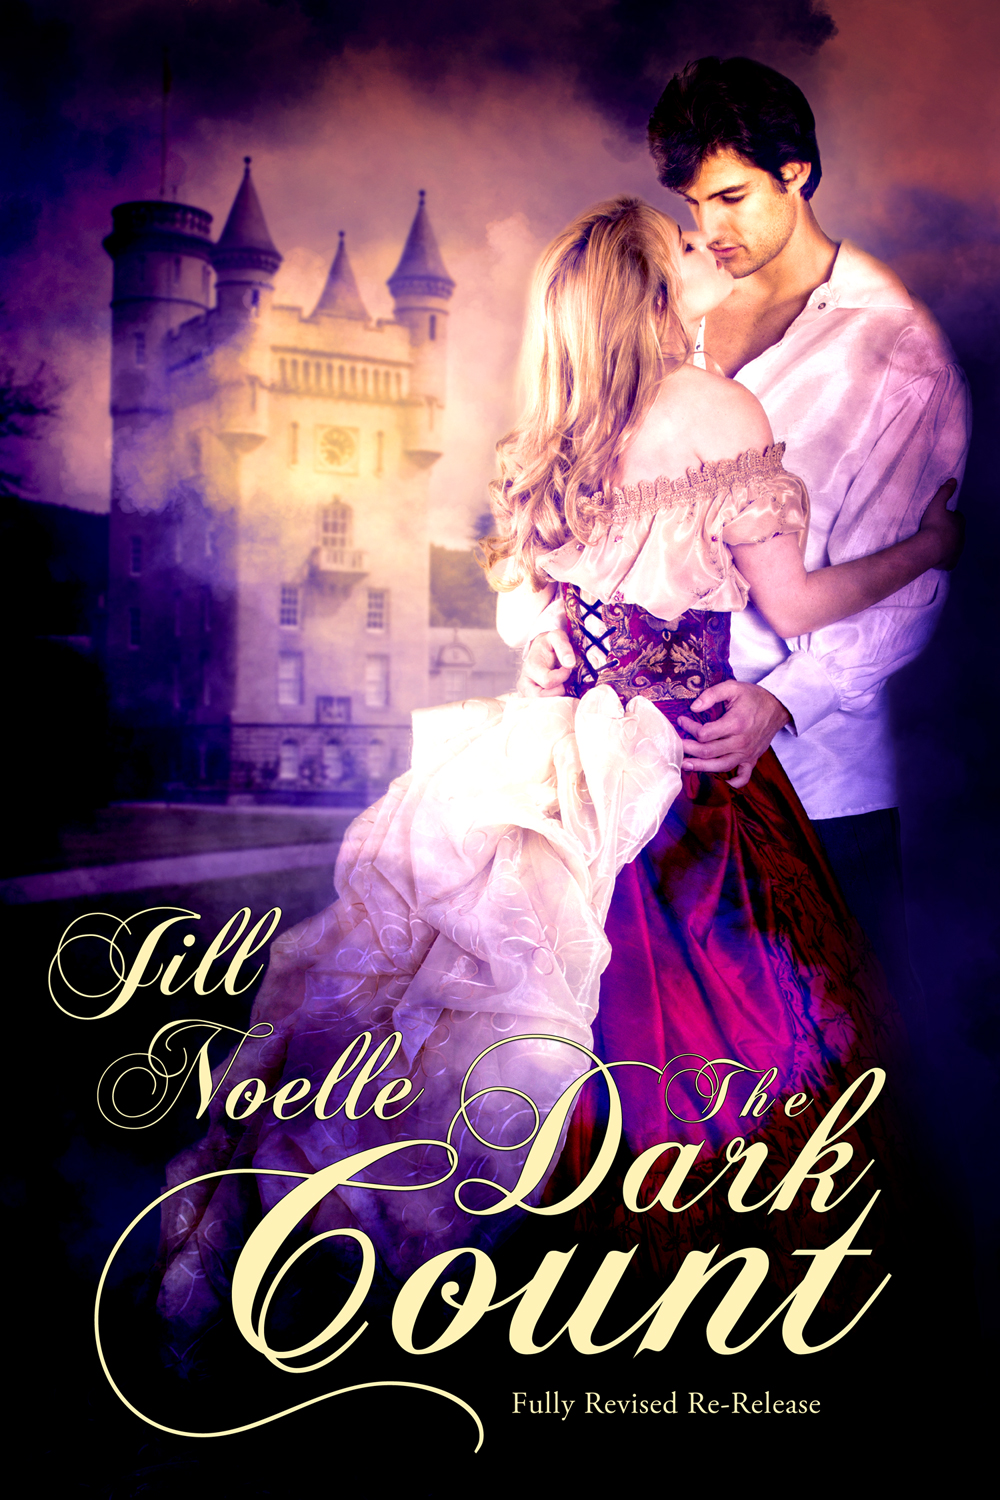 Romance Book Cover Illustration : Historical romance custom ebook and print book covers design